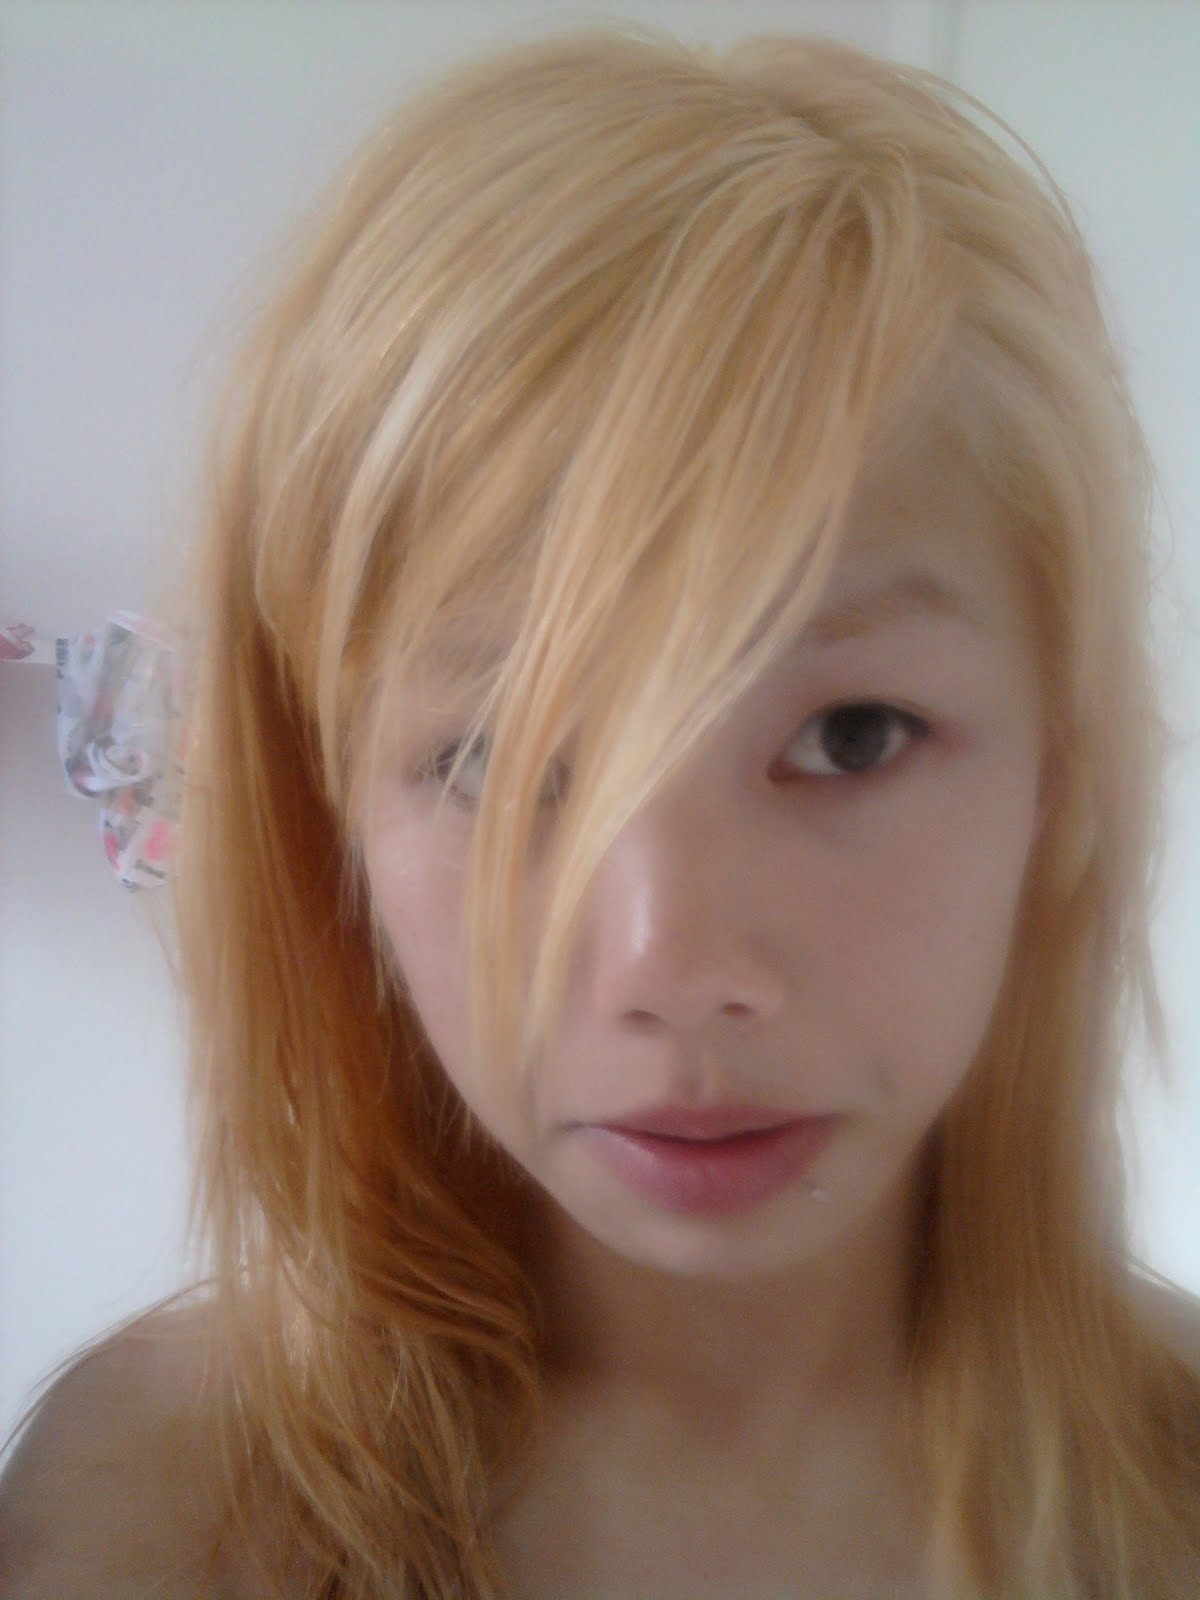 Lazybumttot My Hair Bleaching Experience